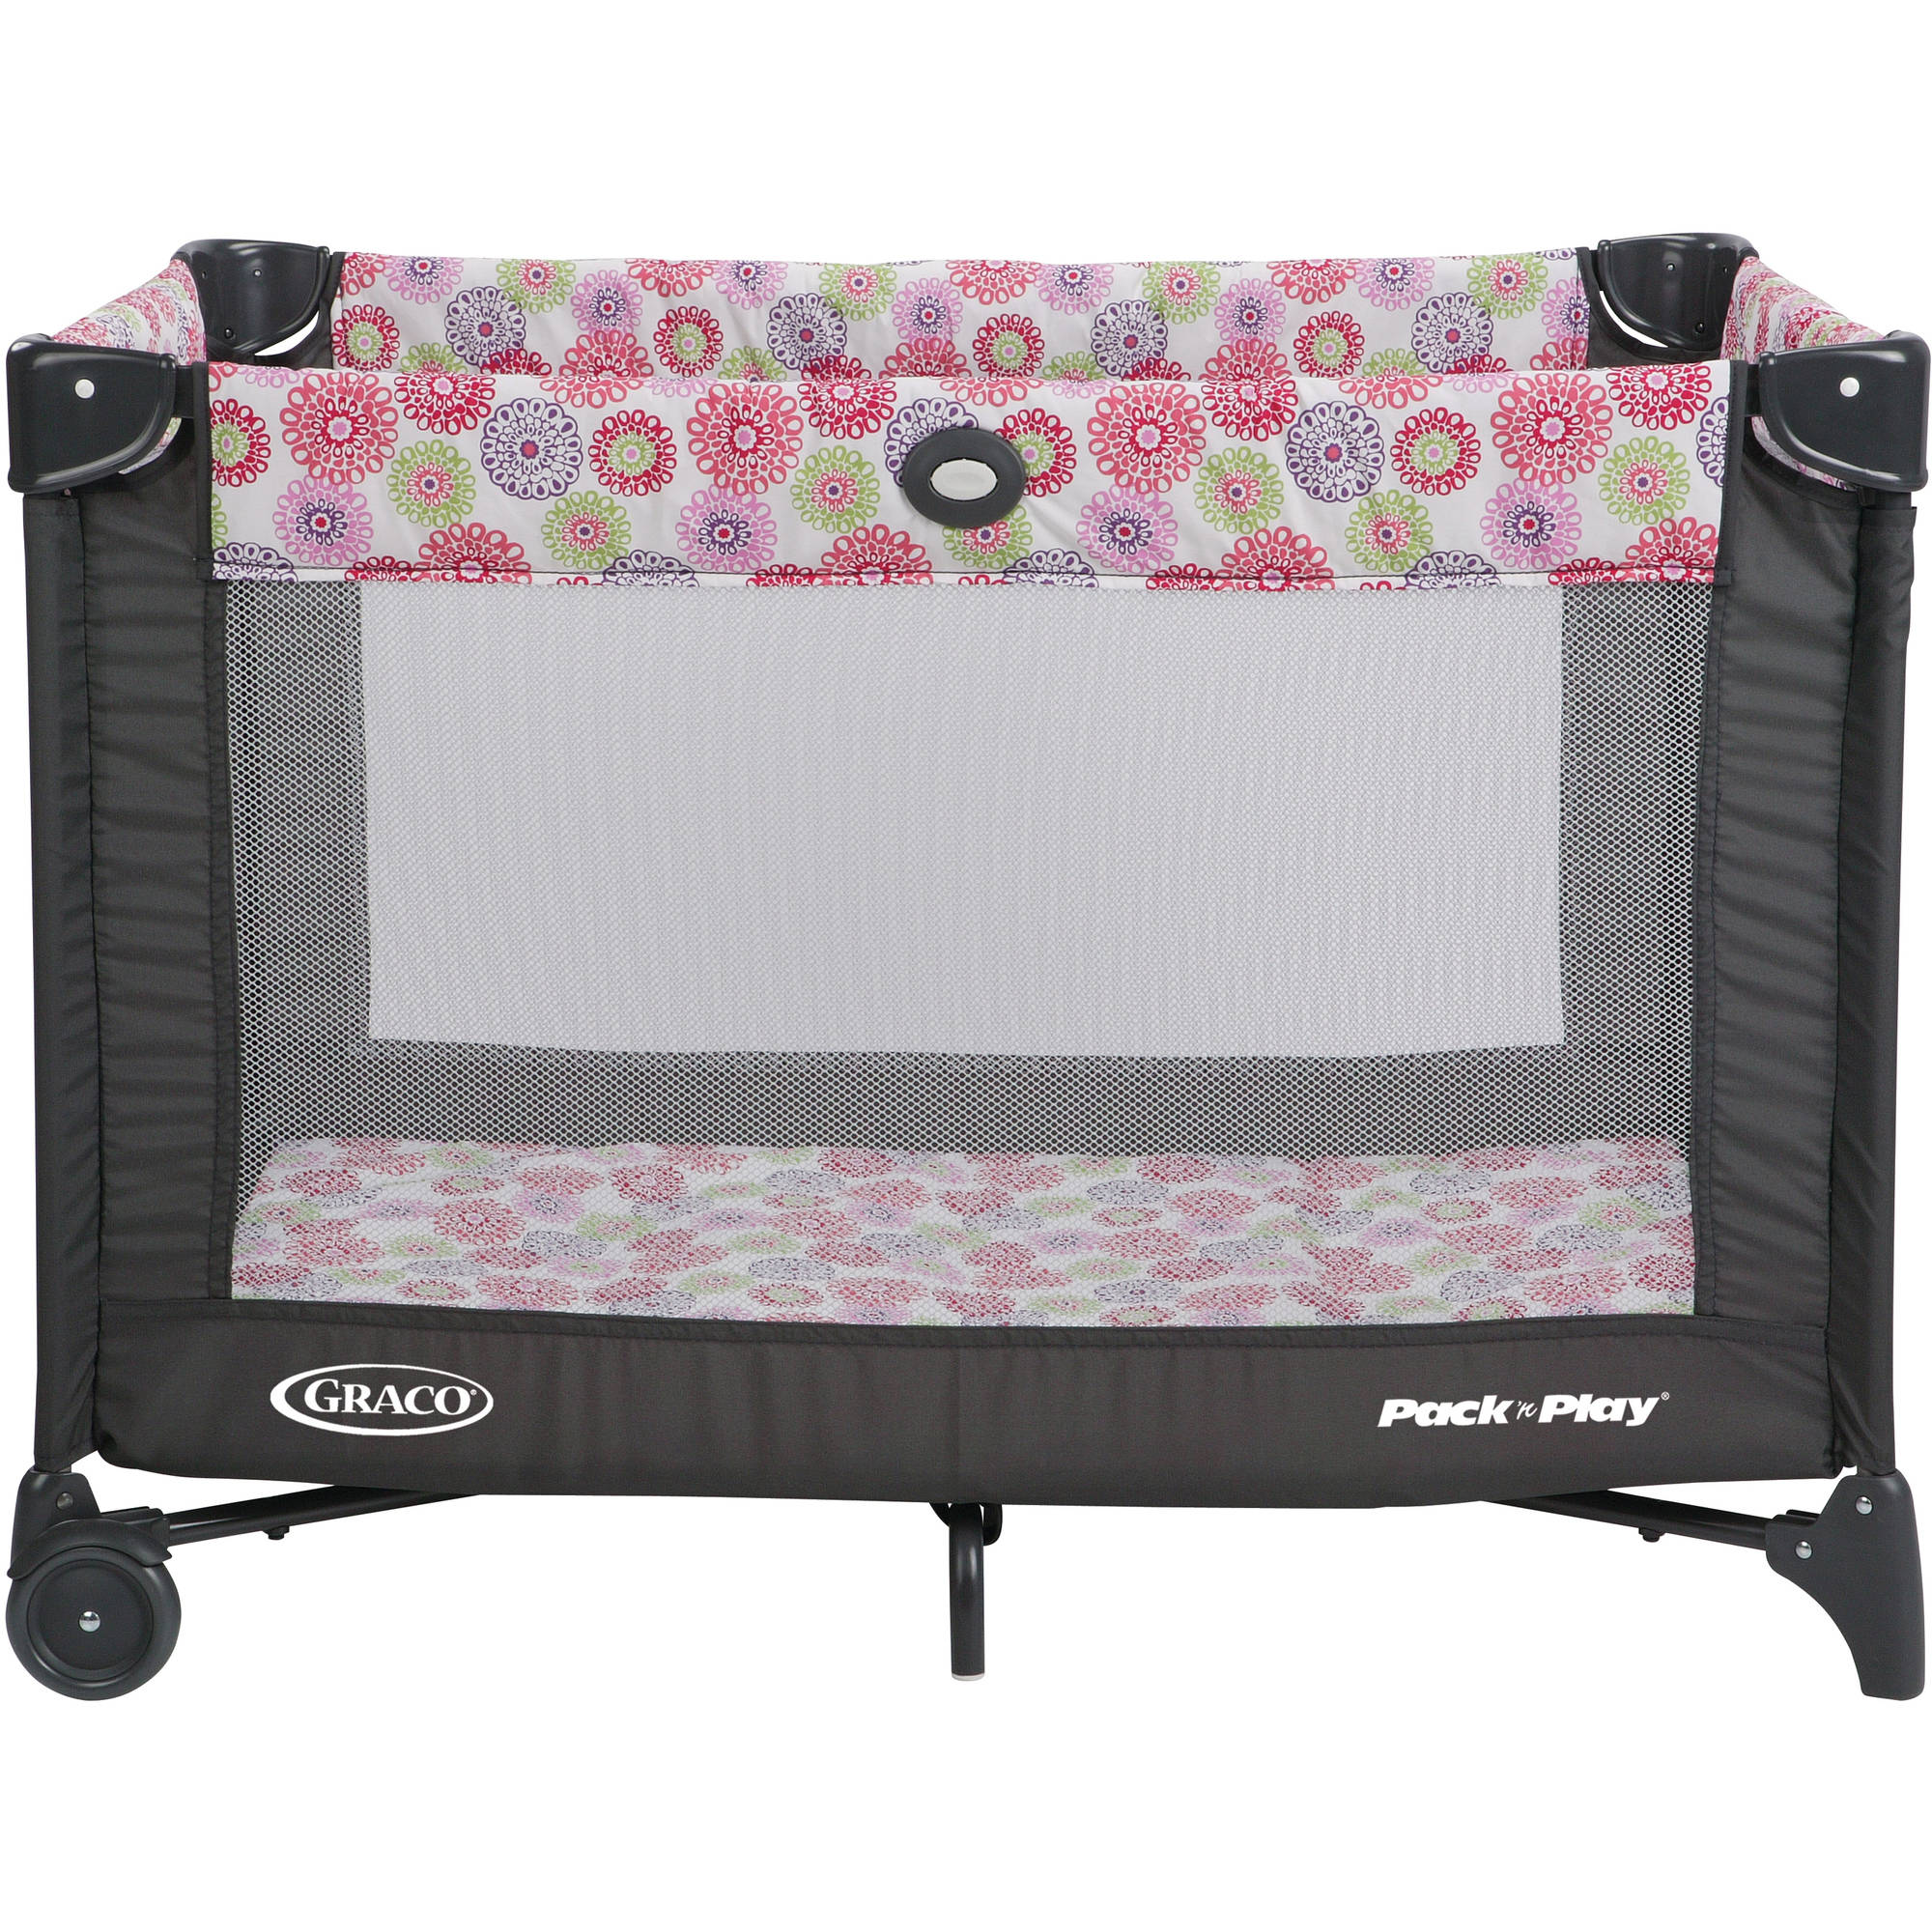 Graco 174 Pack N Play 174 Portable Playard Livia Best Playards